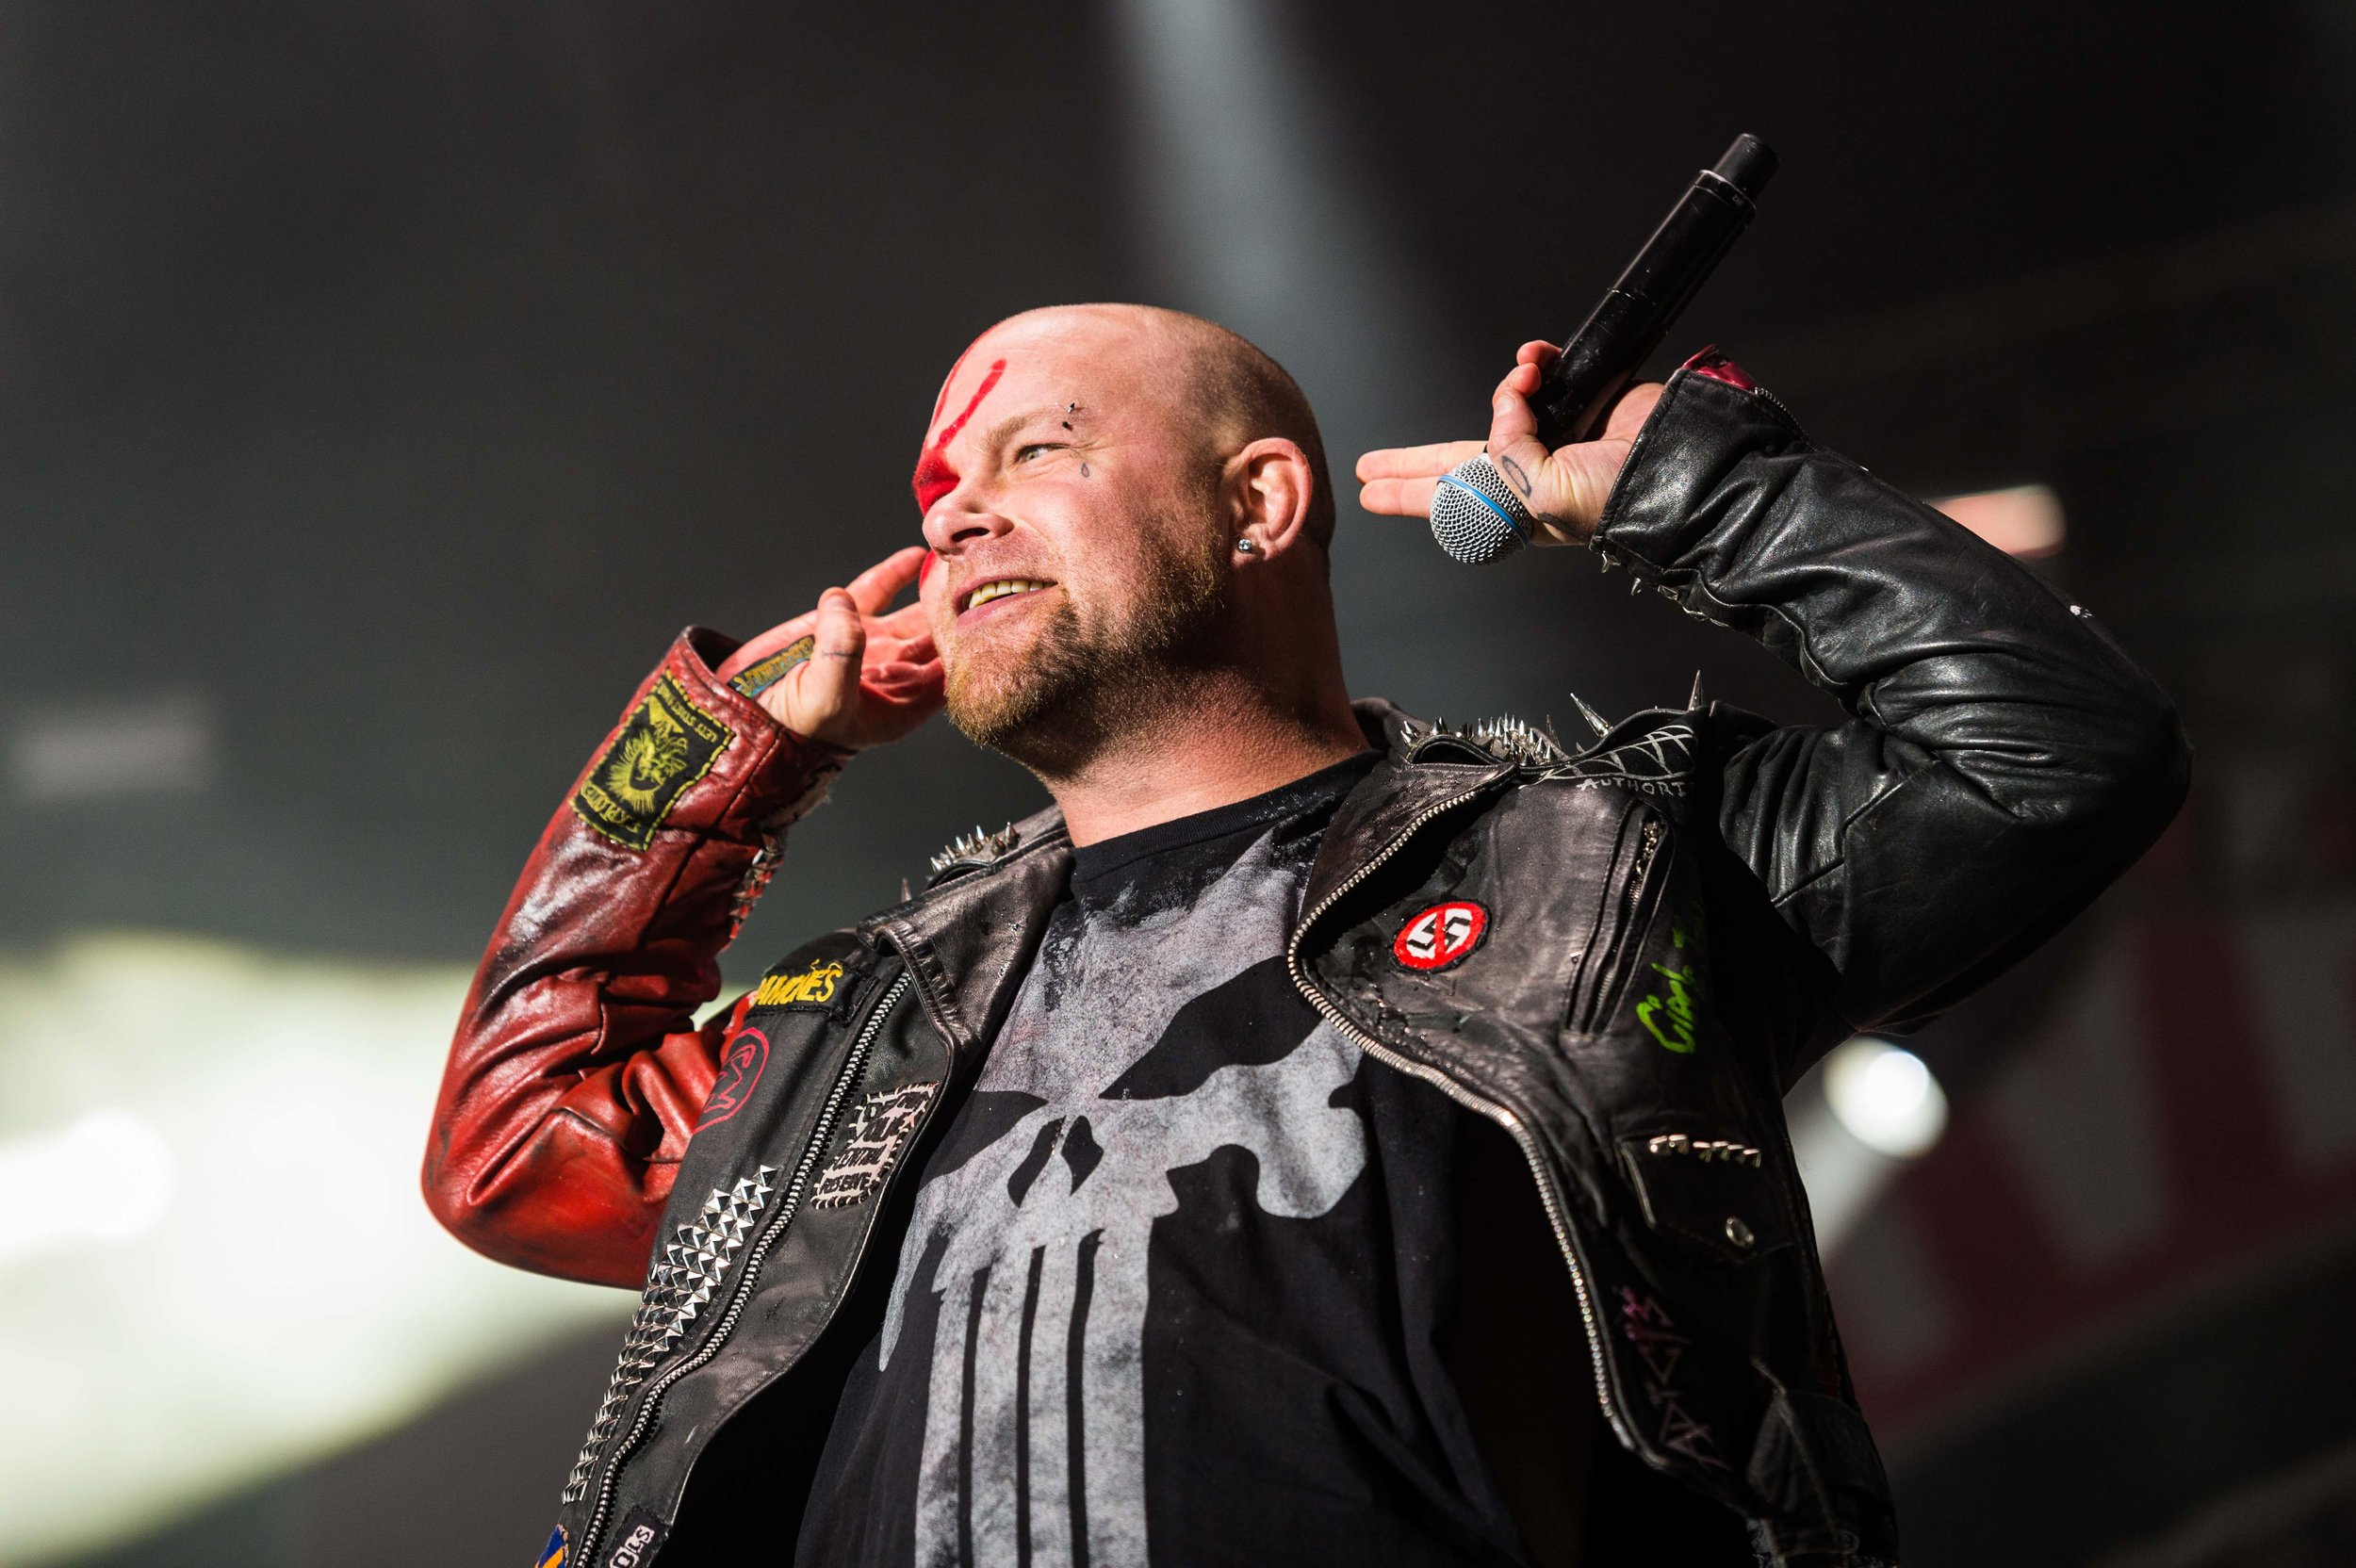 Five Finger Death Punch Sep 30 2017-6.jpg